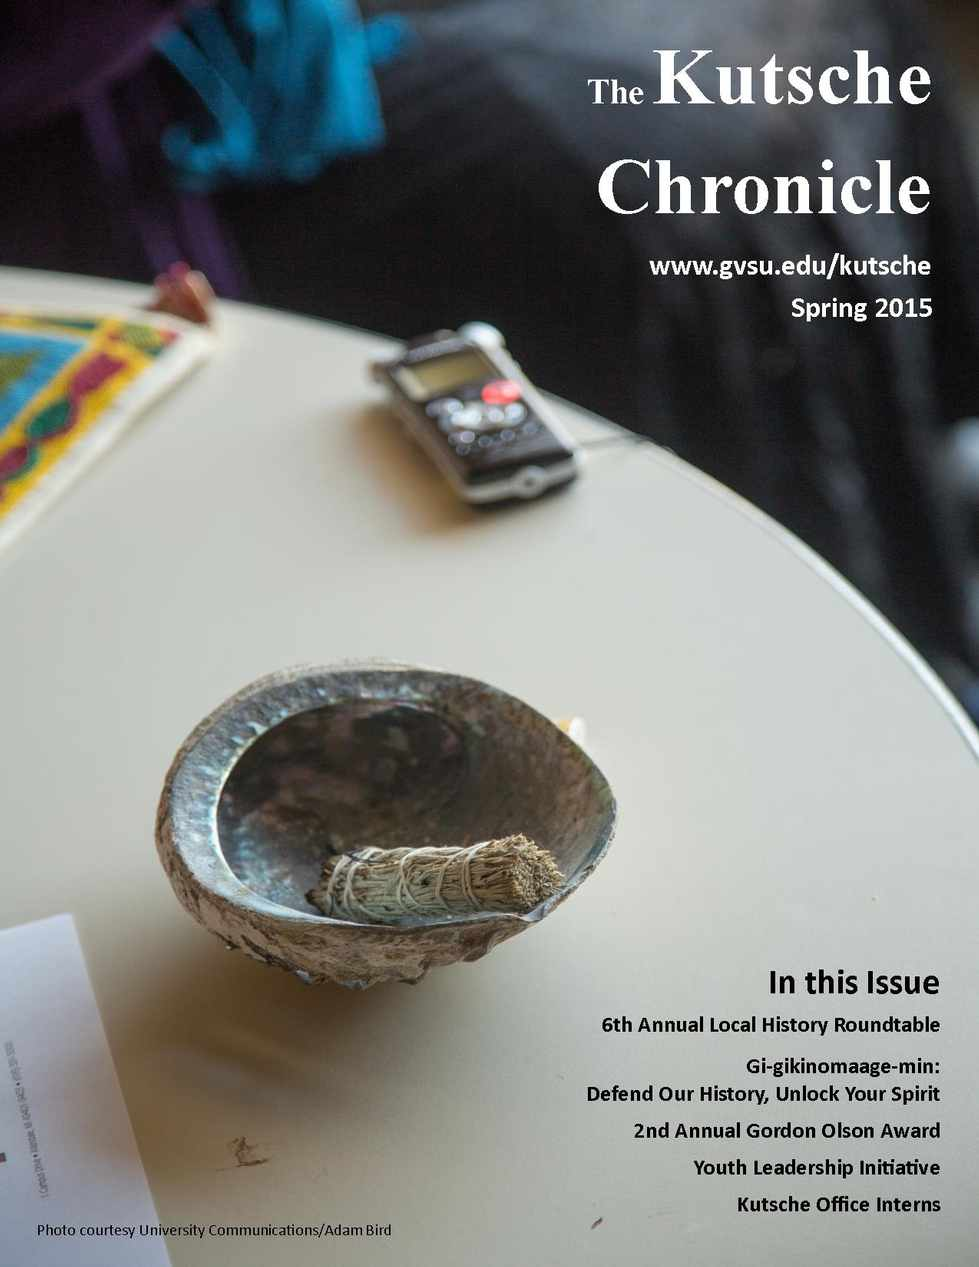 Spring 2015 Kutsche Chronicle